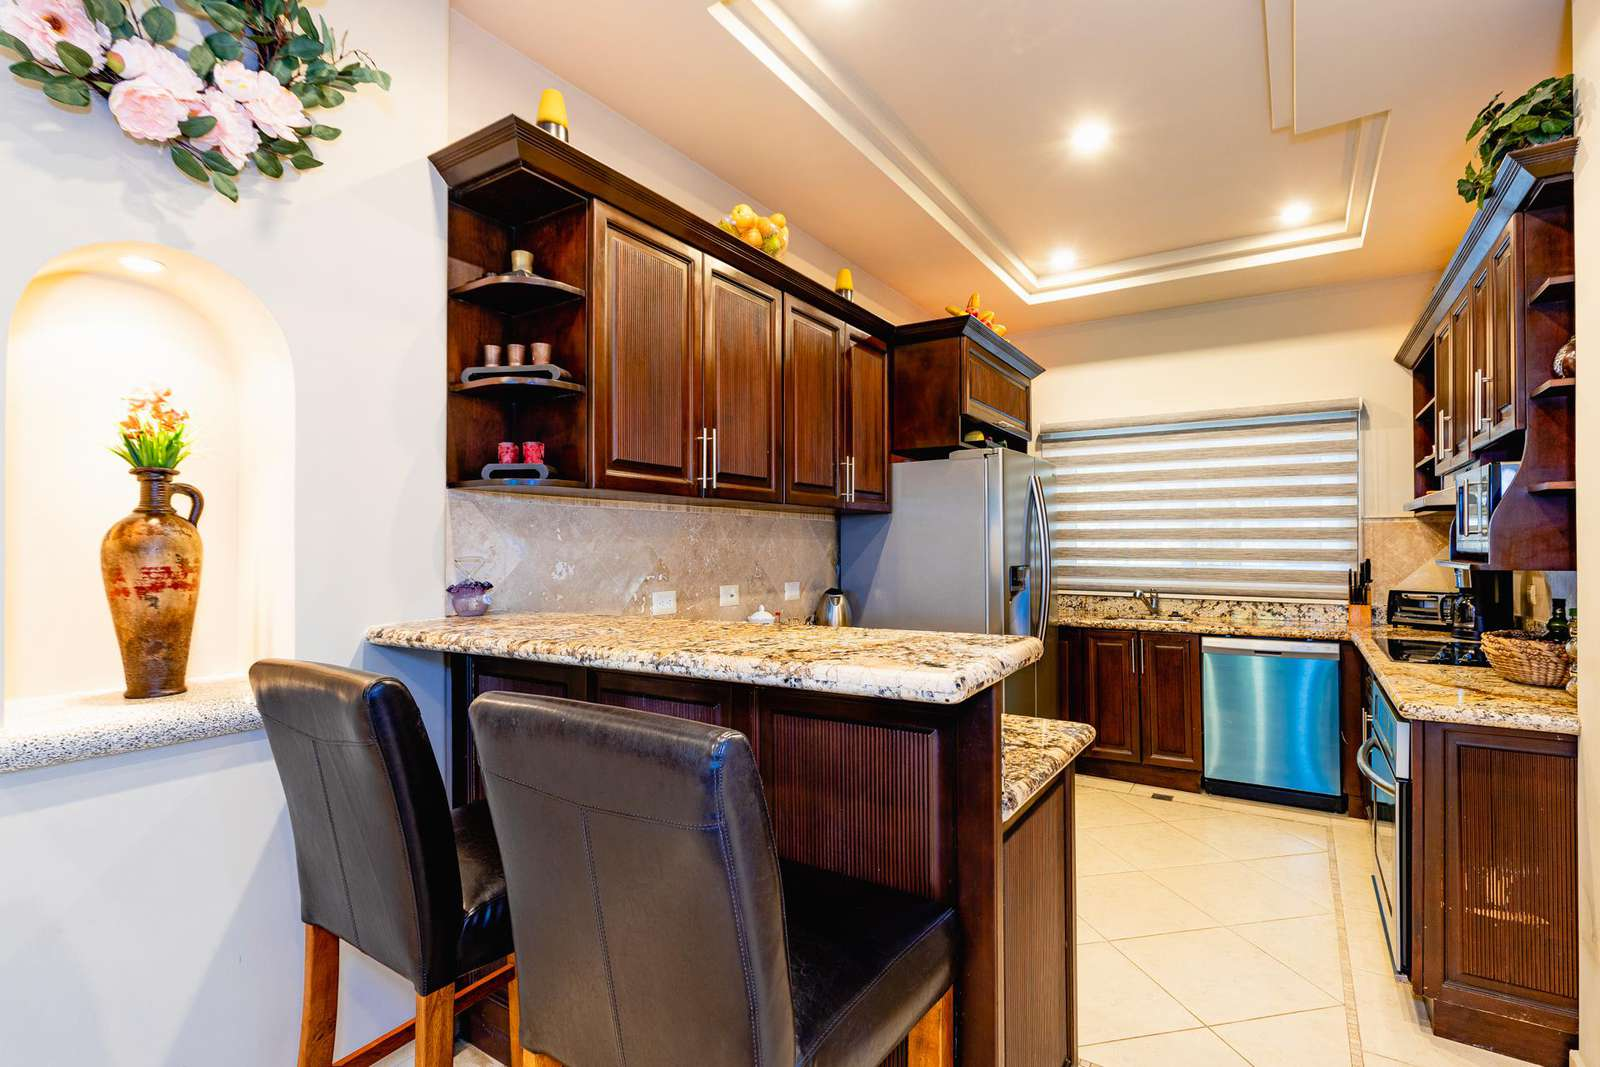 Fully stocked gourmet kitchen with breakfast bar